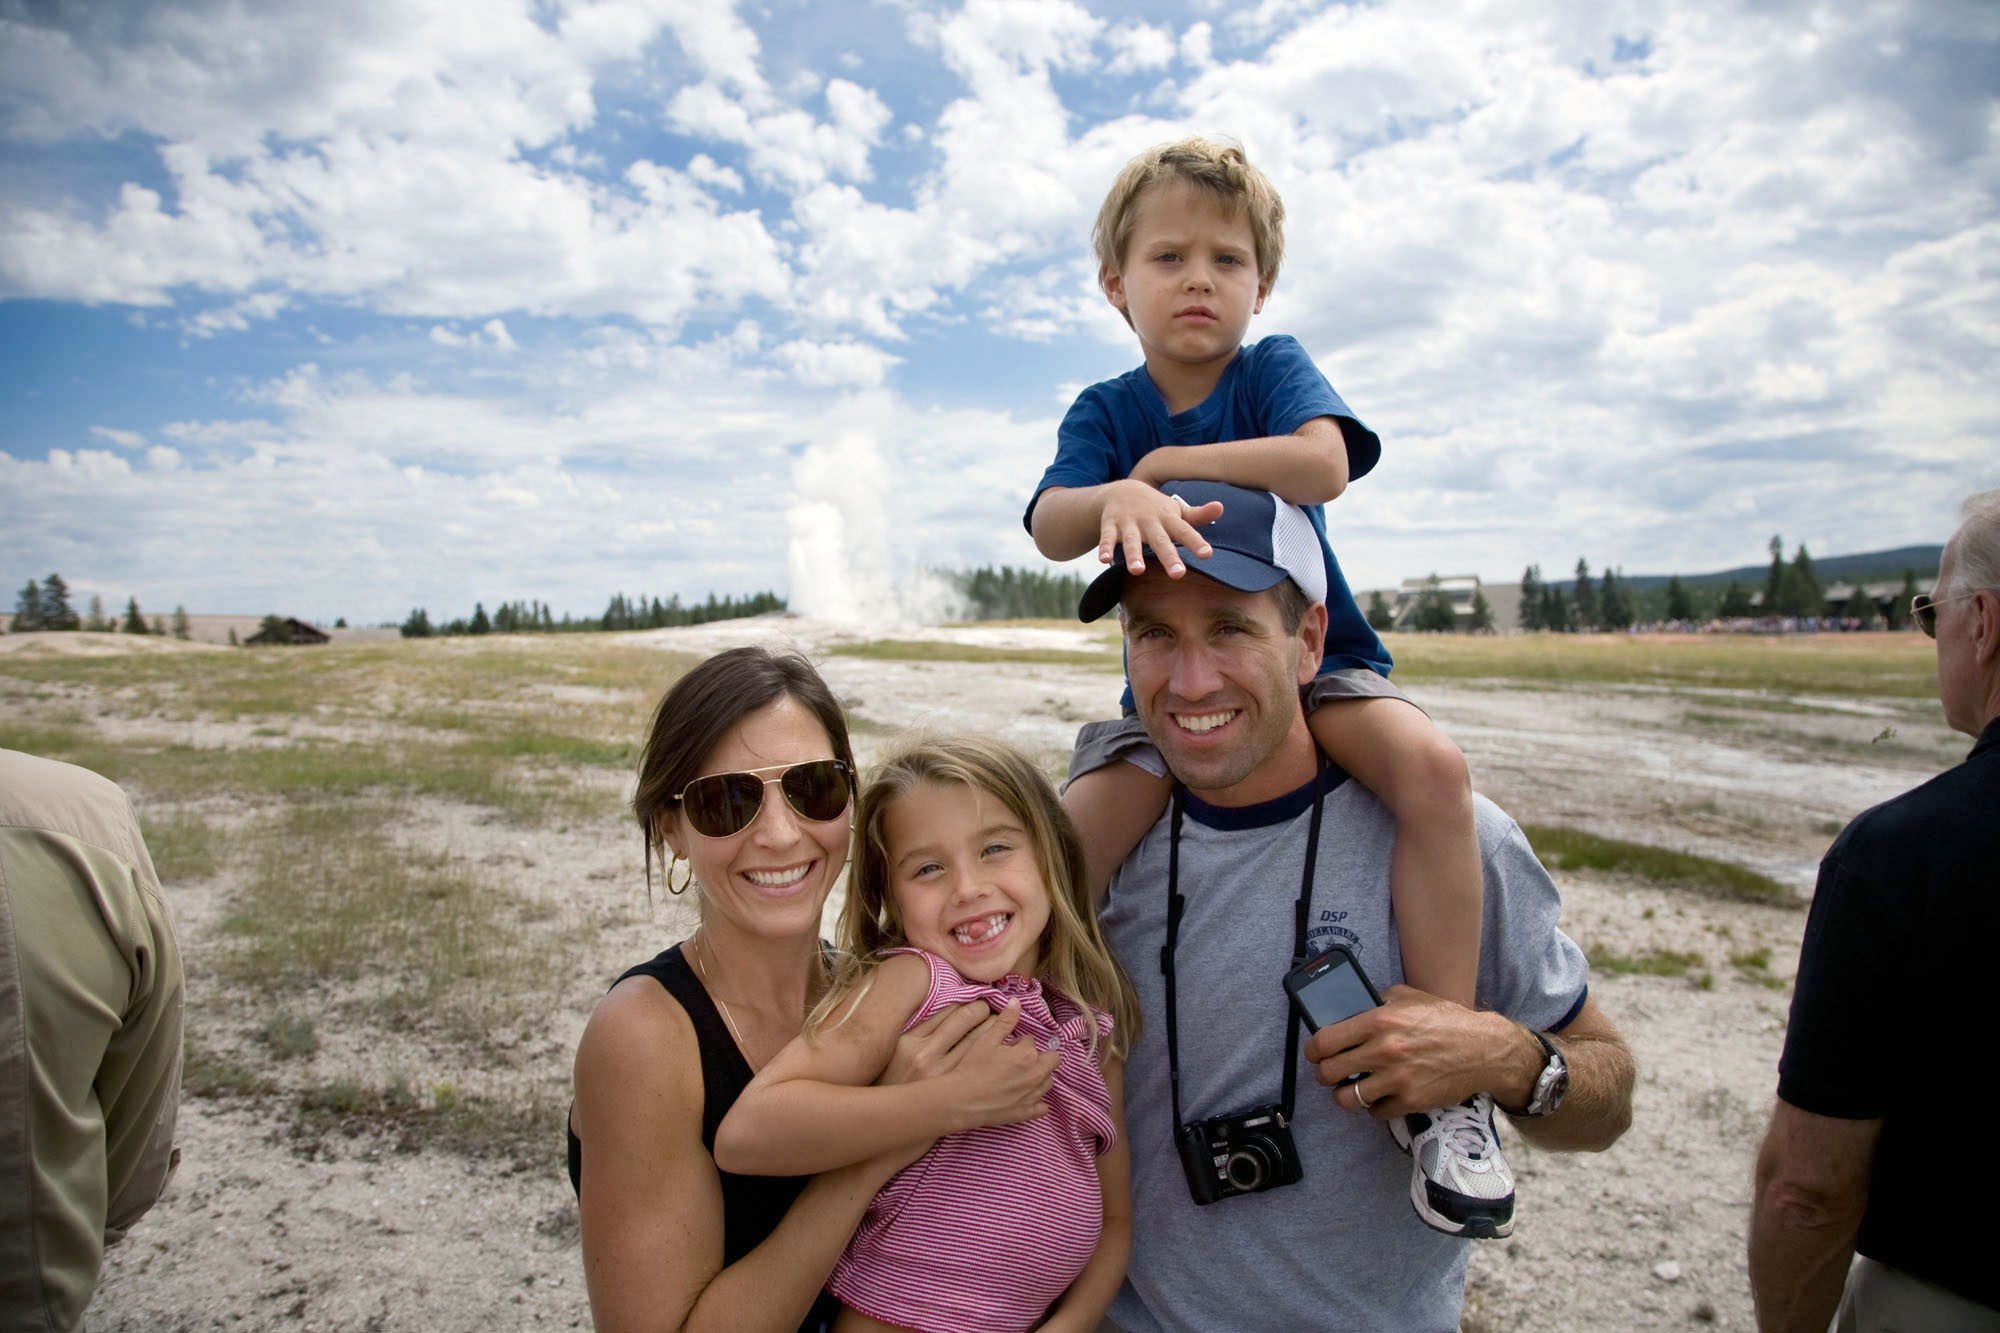 Beau Biden and family at a national park.